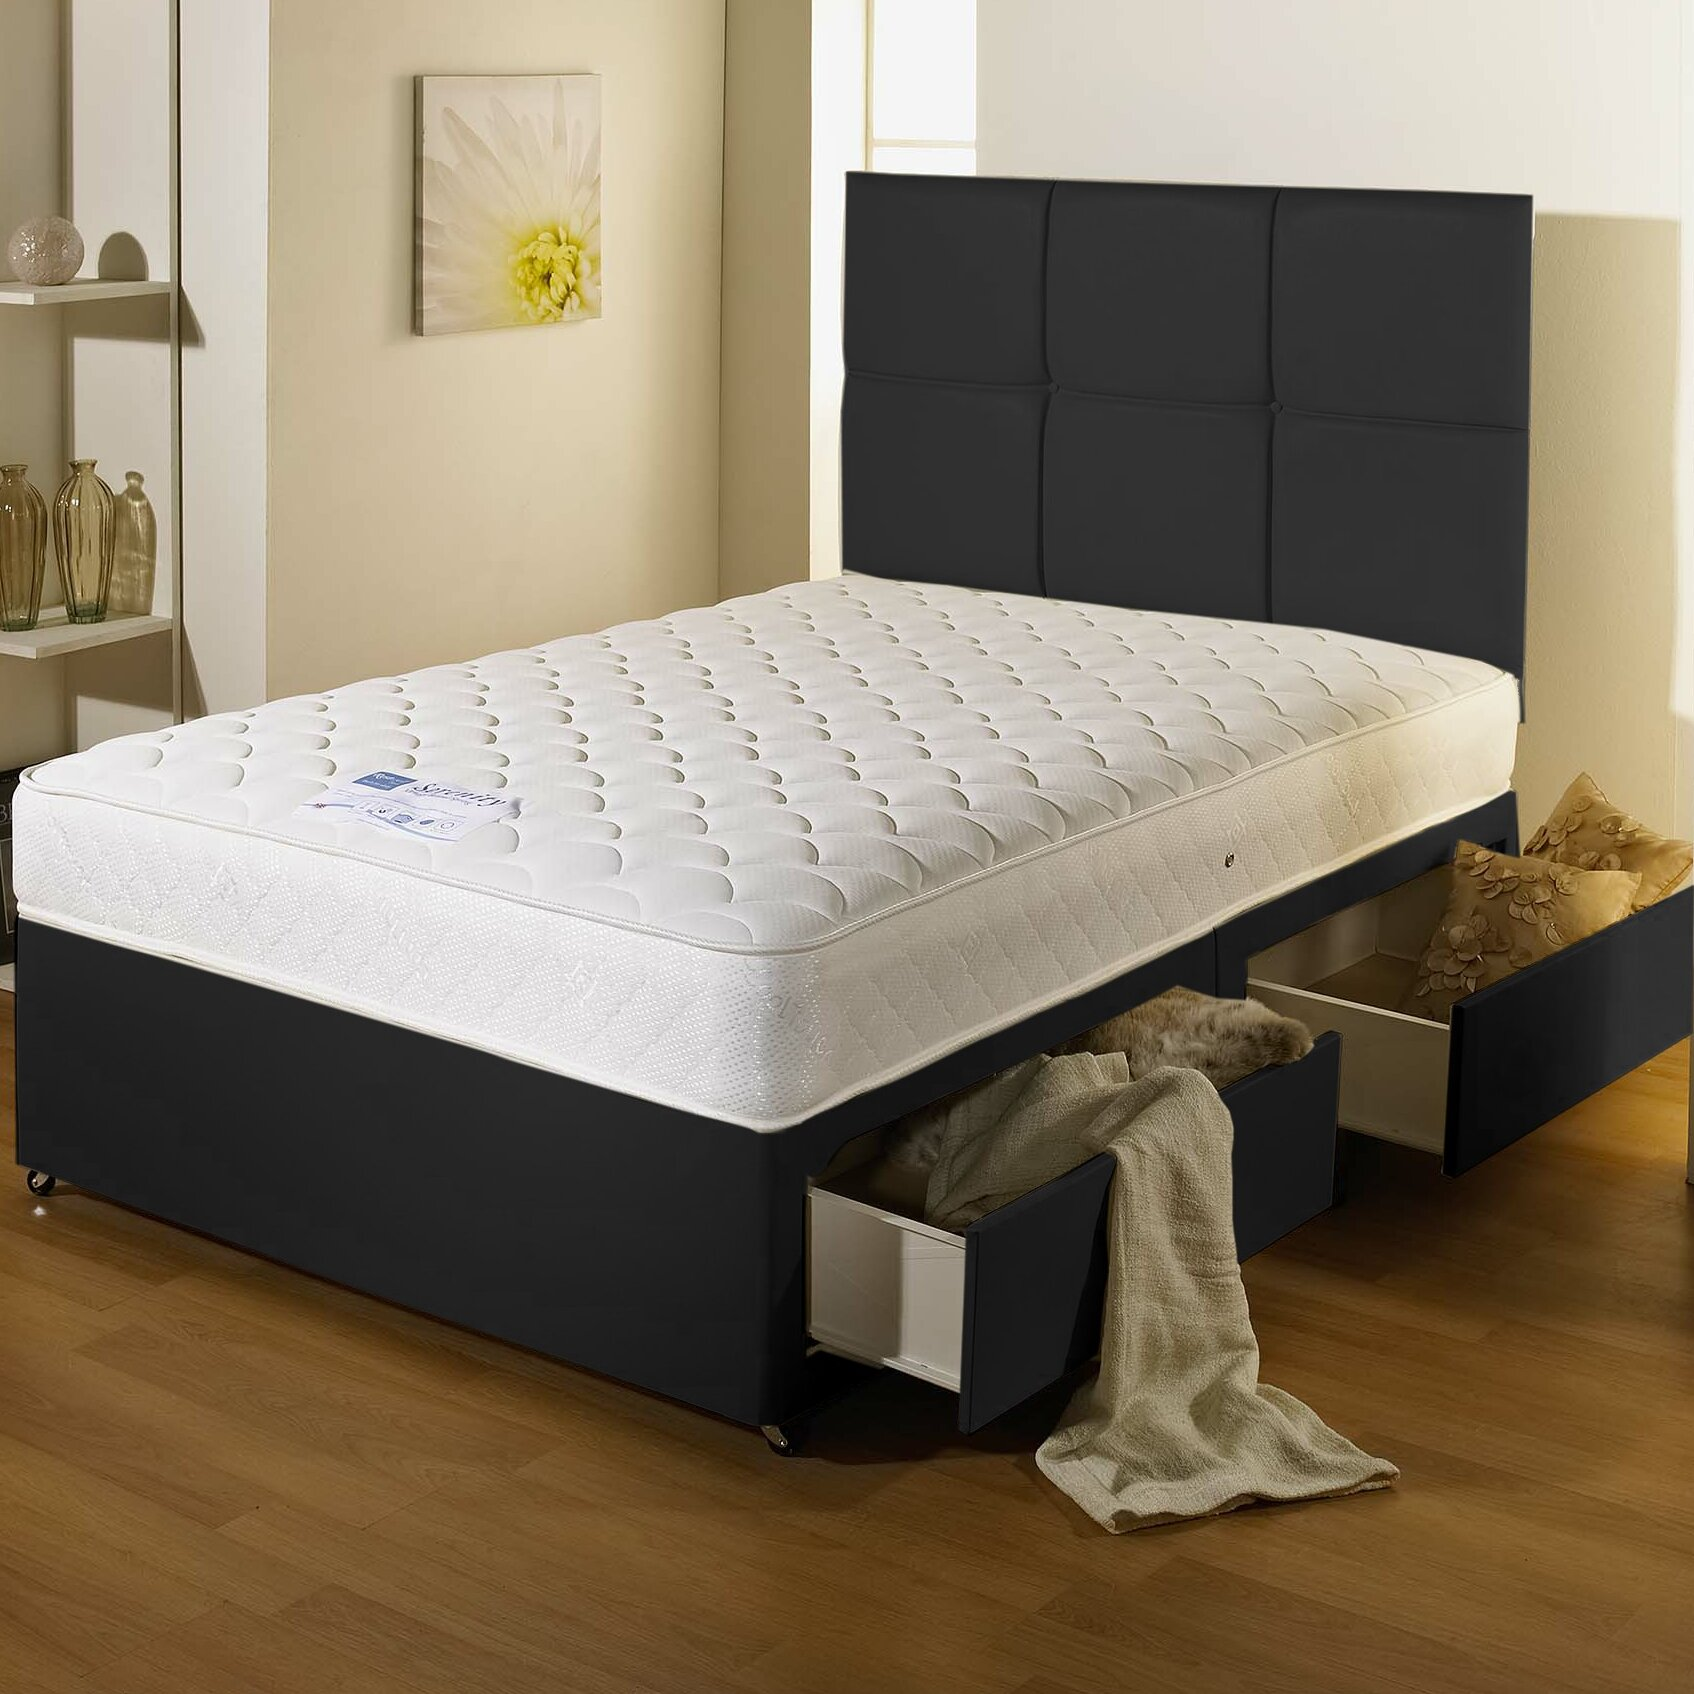 Home haus serena orthopaedic divan bed wayfair uk for Orthopedic divan beds